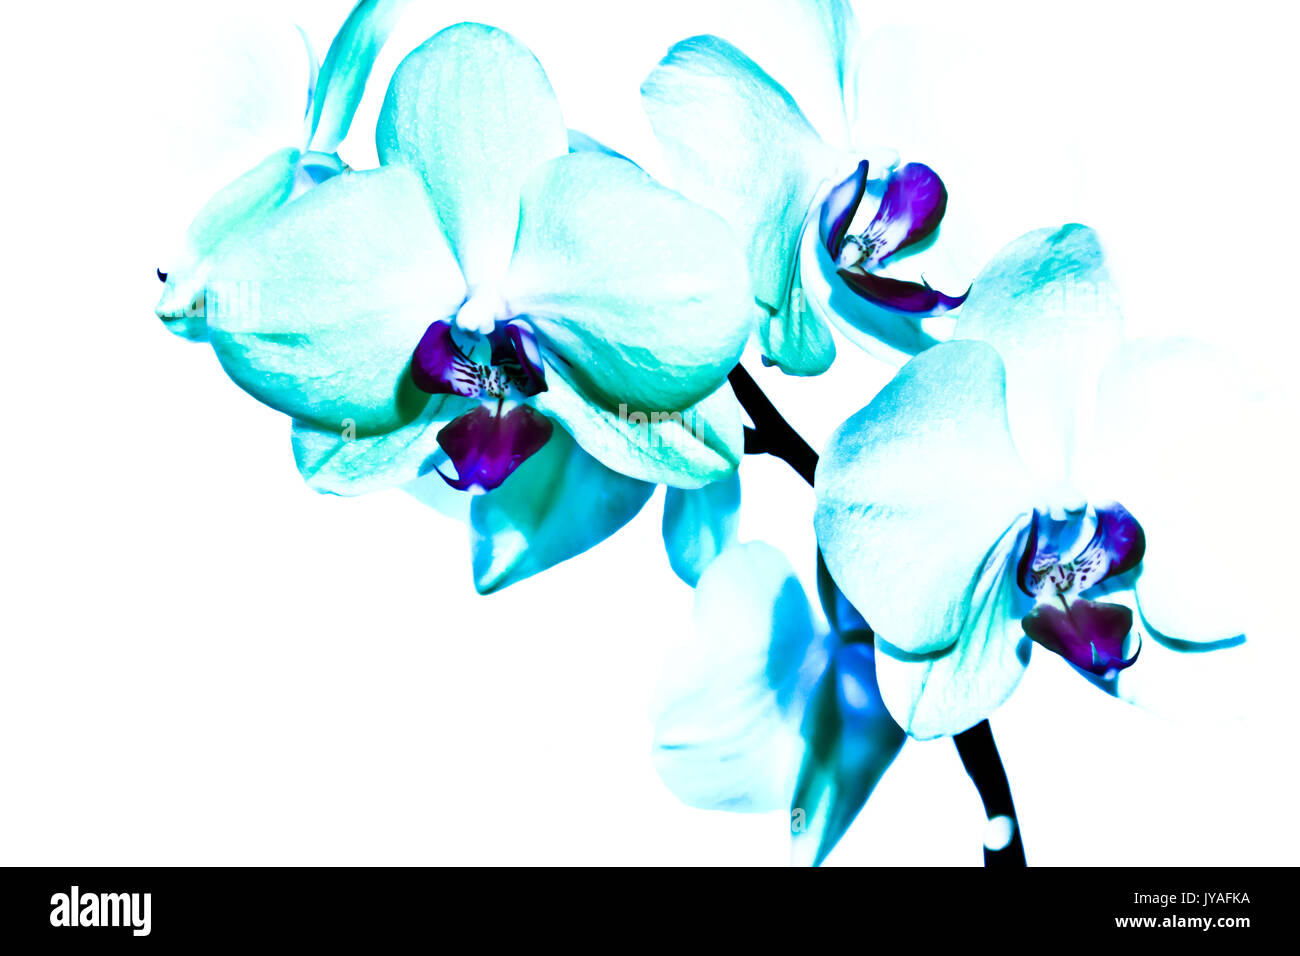 A spray of three pale aqua orchids are featured with bright purple hearts. - Stock Image